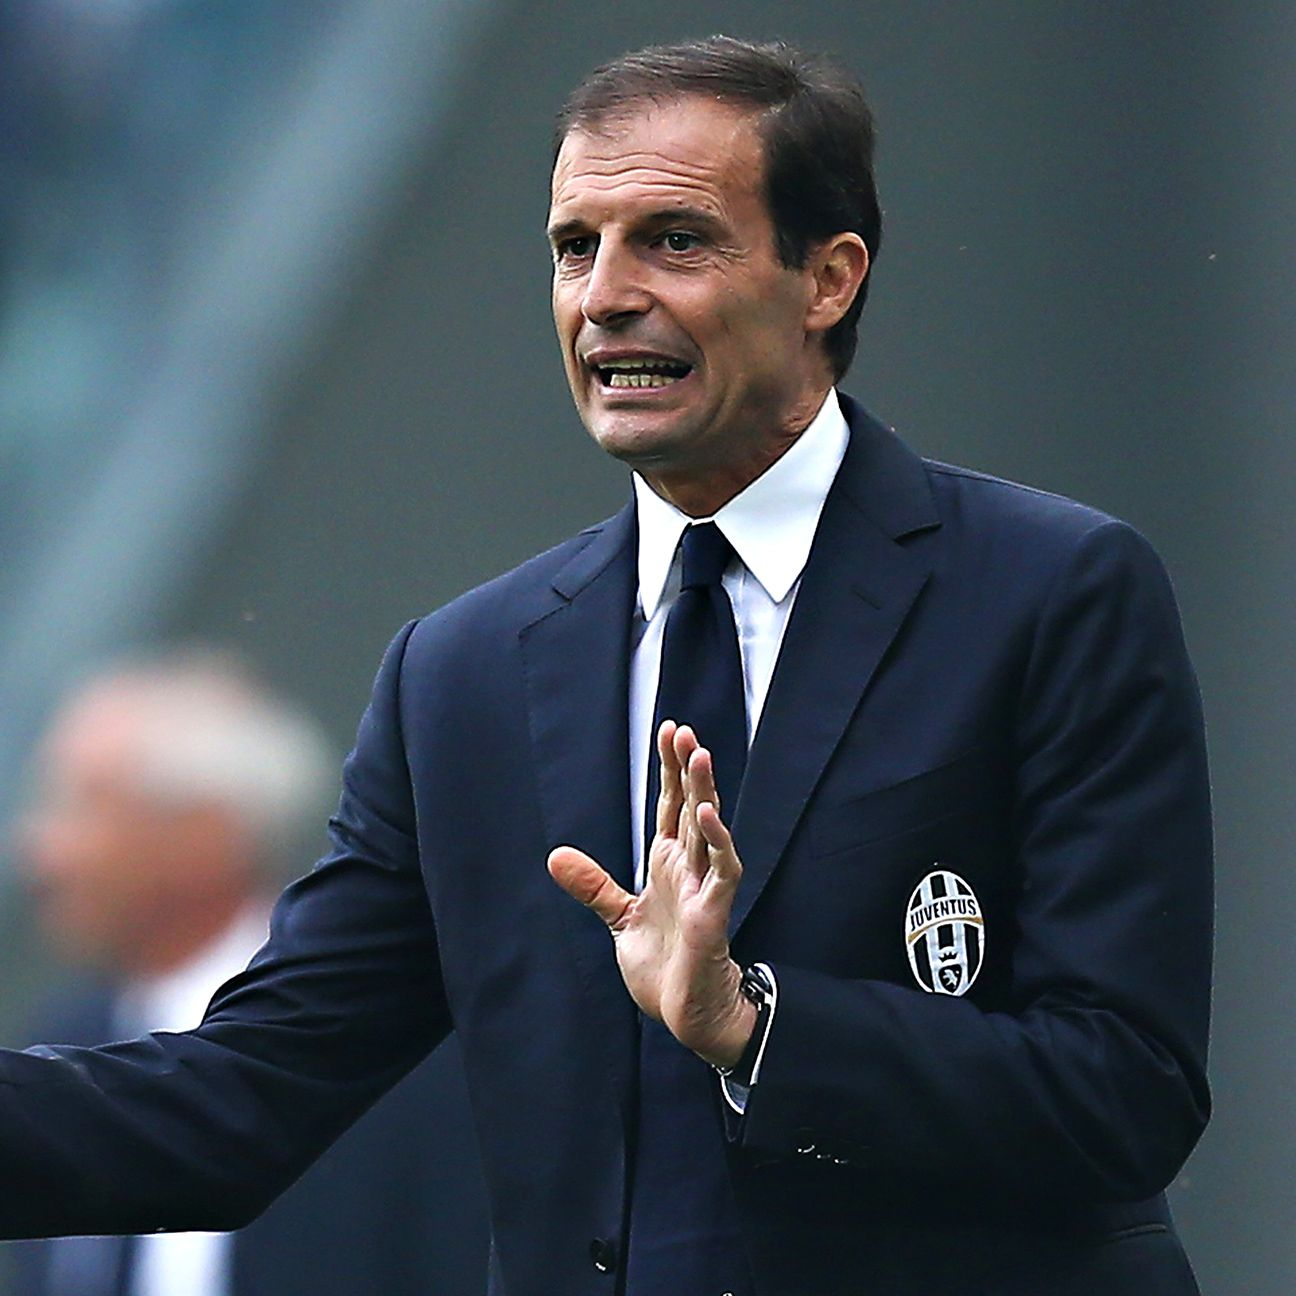 Juventus' deep roster is a luxury for head coach Massimiliano Allegri.